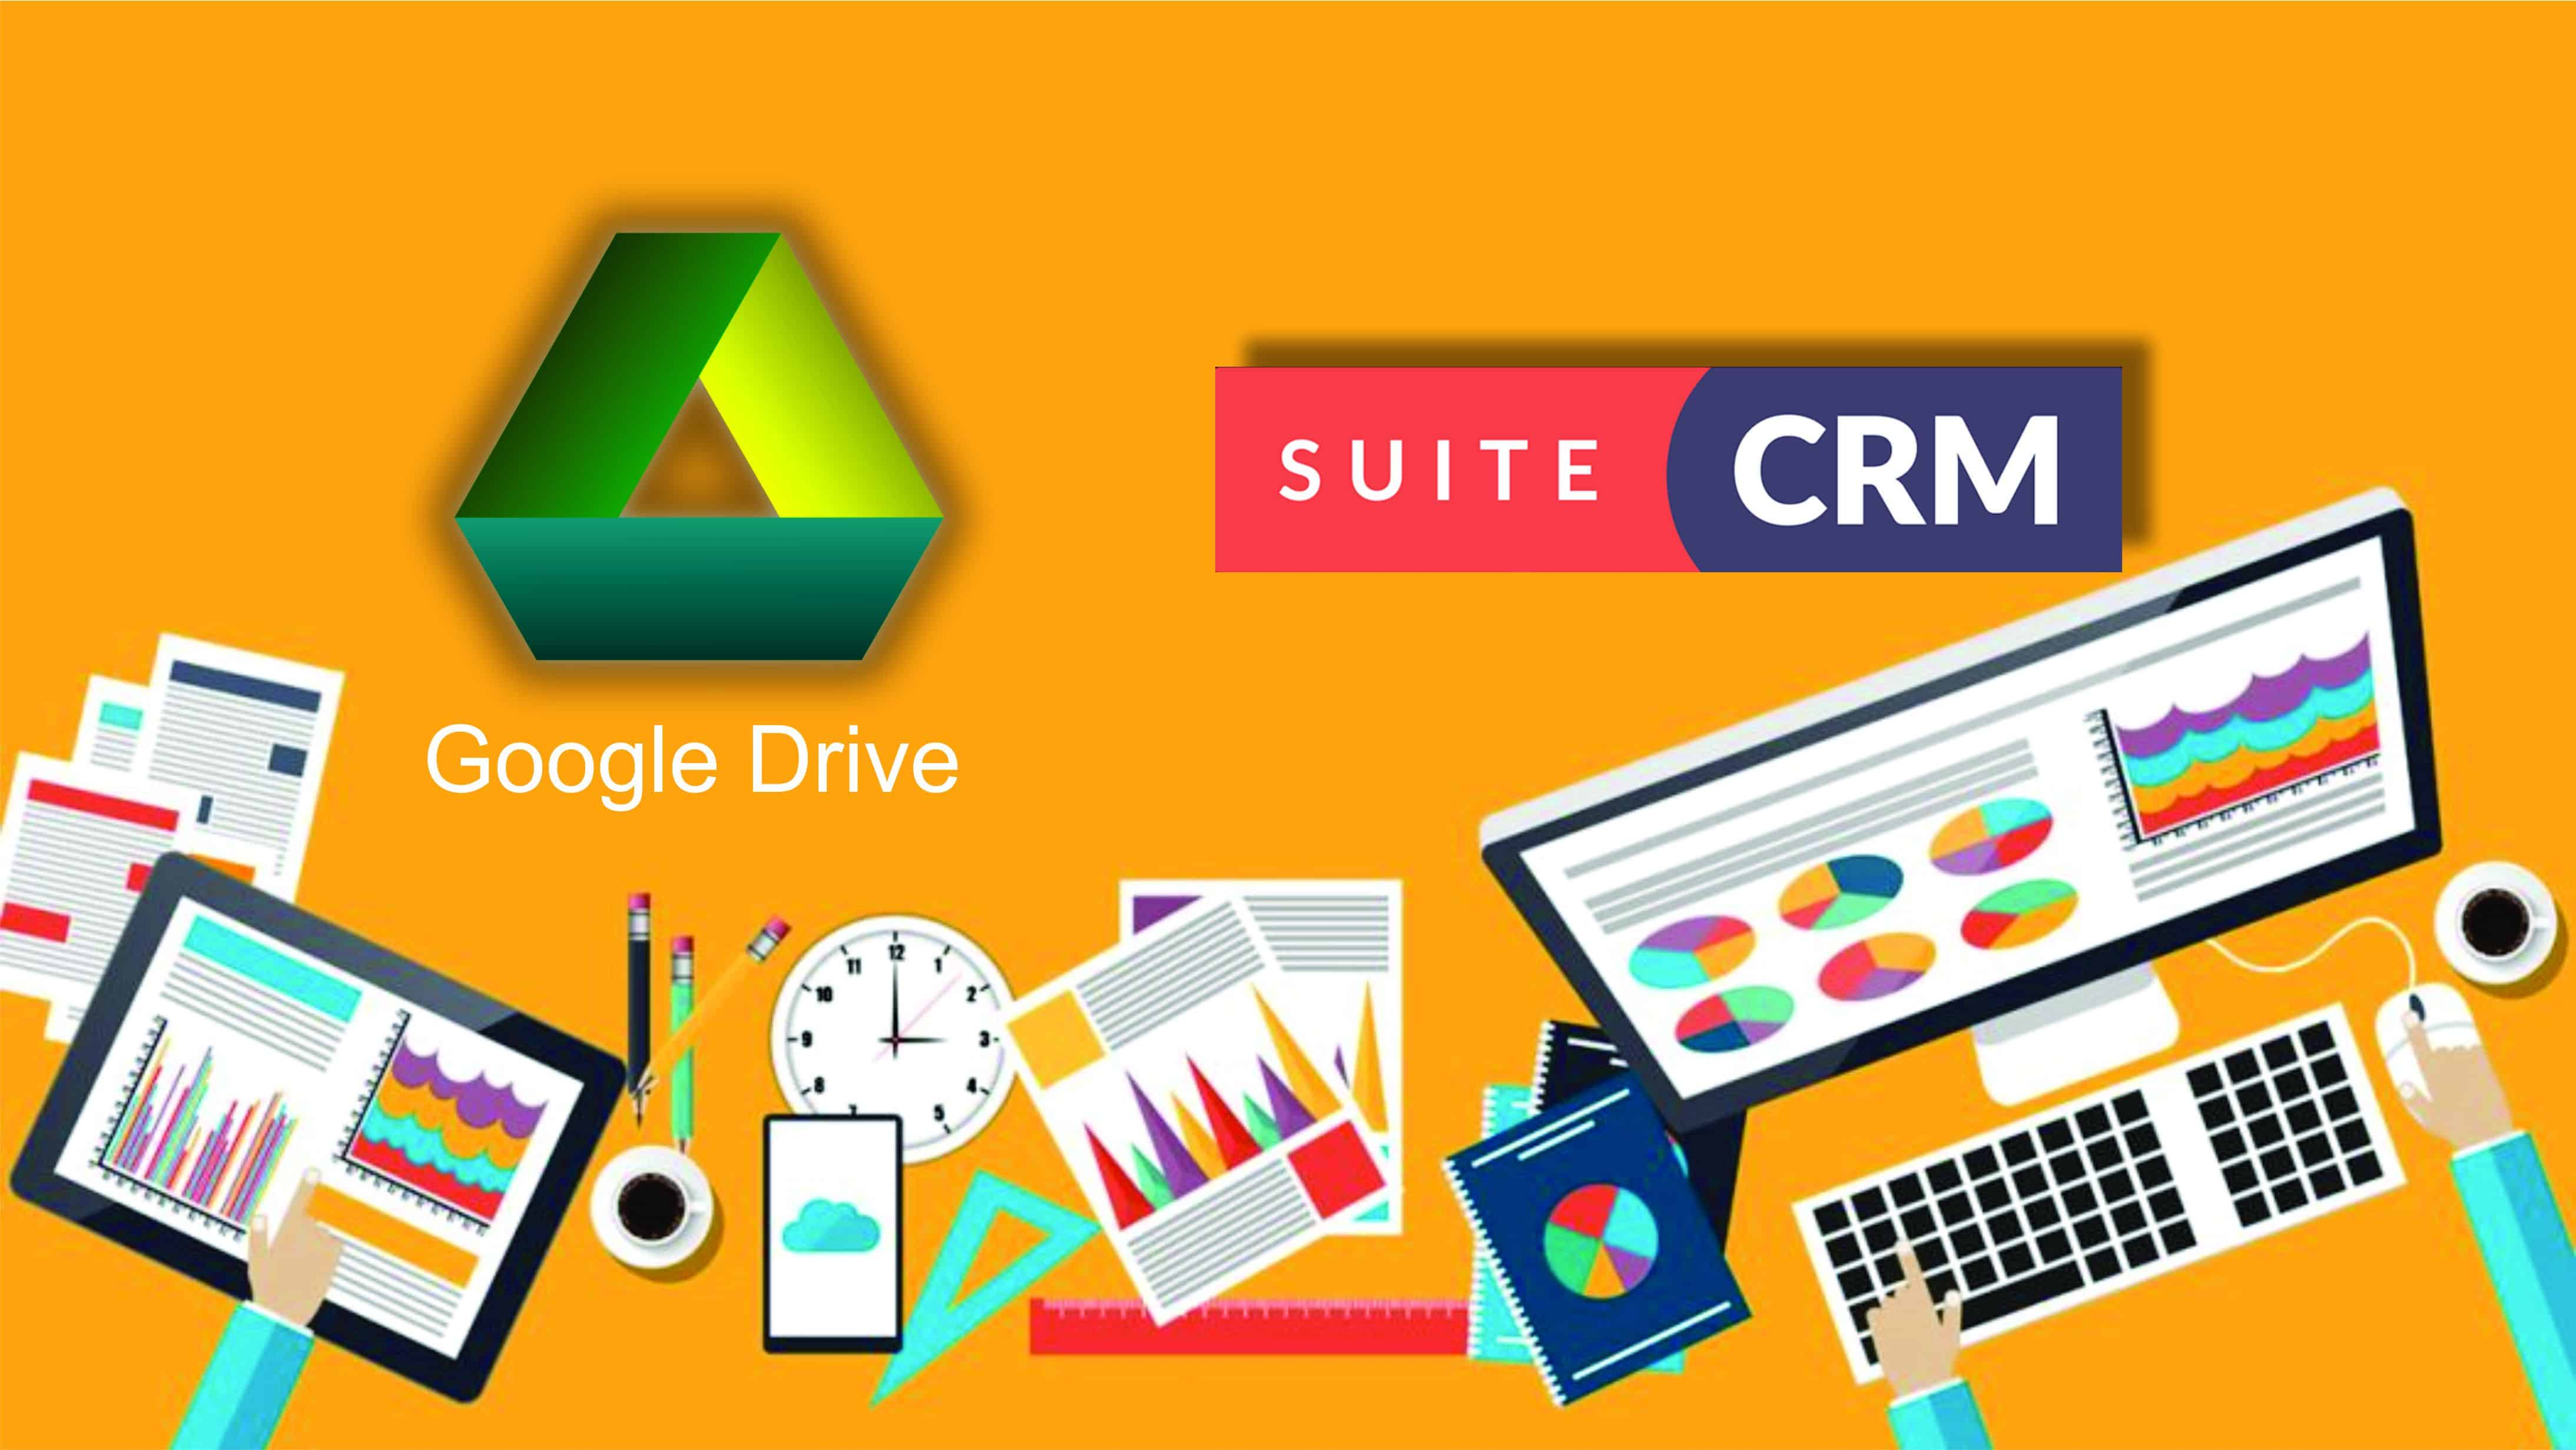 Google Drive with SuiteCRM is the Perfect Combination